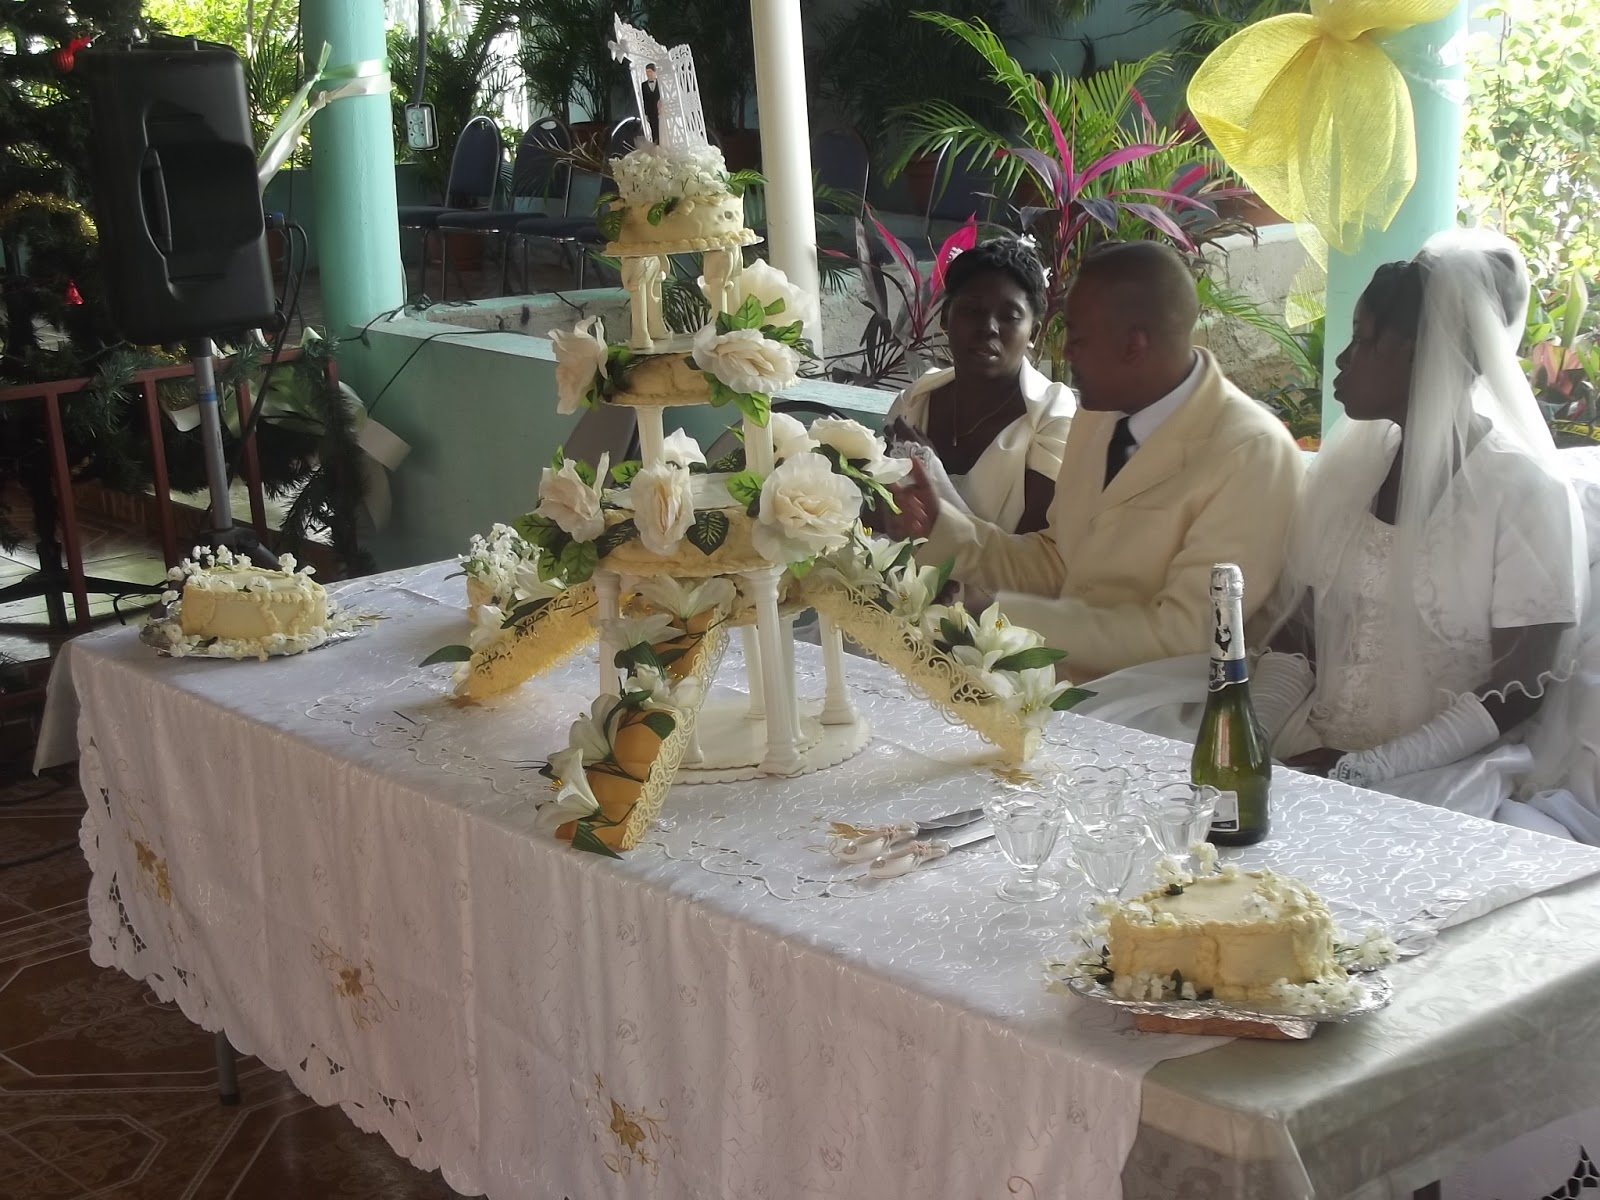 Haiti Wedding Traditions Food: Thede Connection- HAITI: Haiti's 209th Independence Day